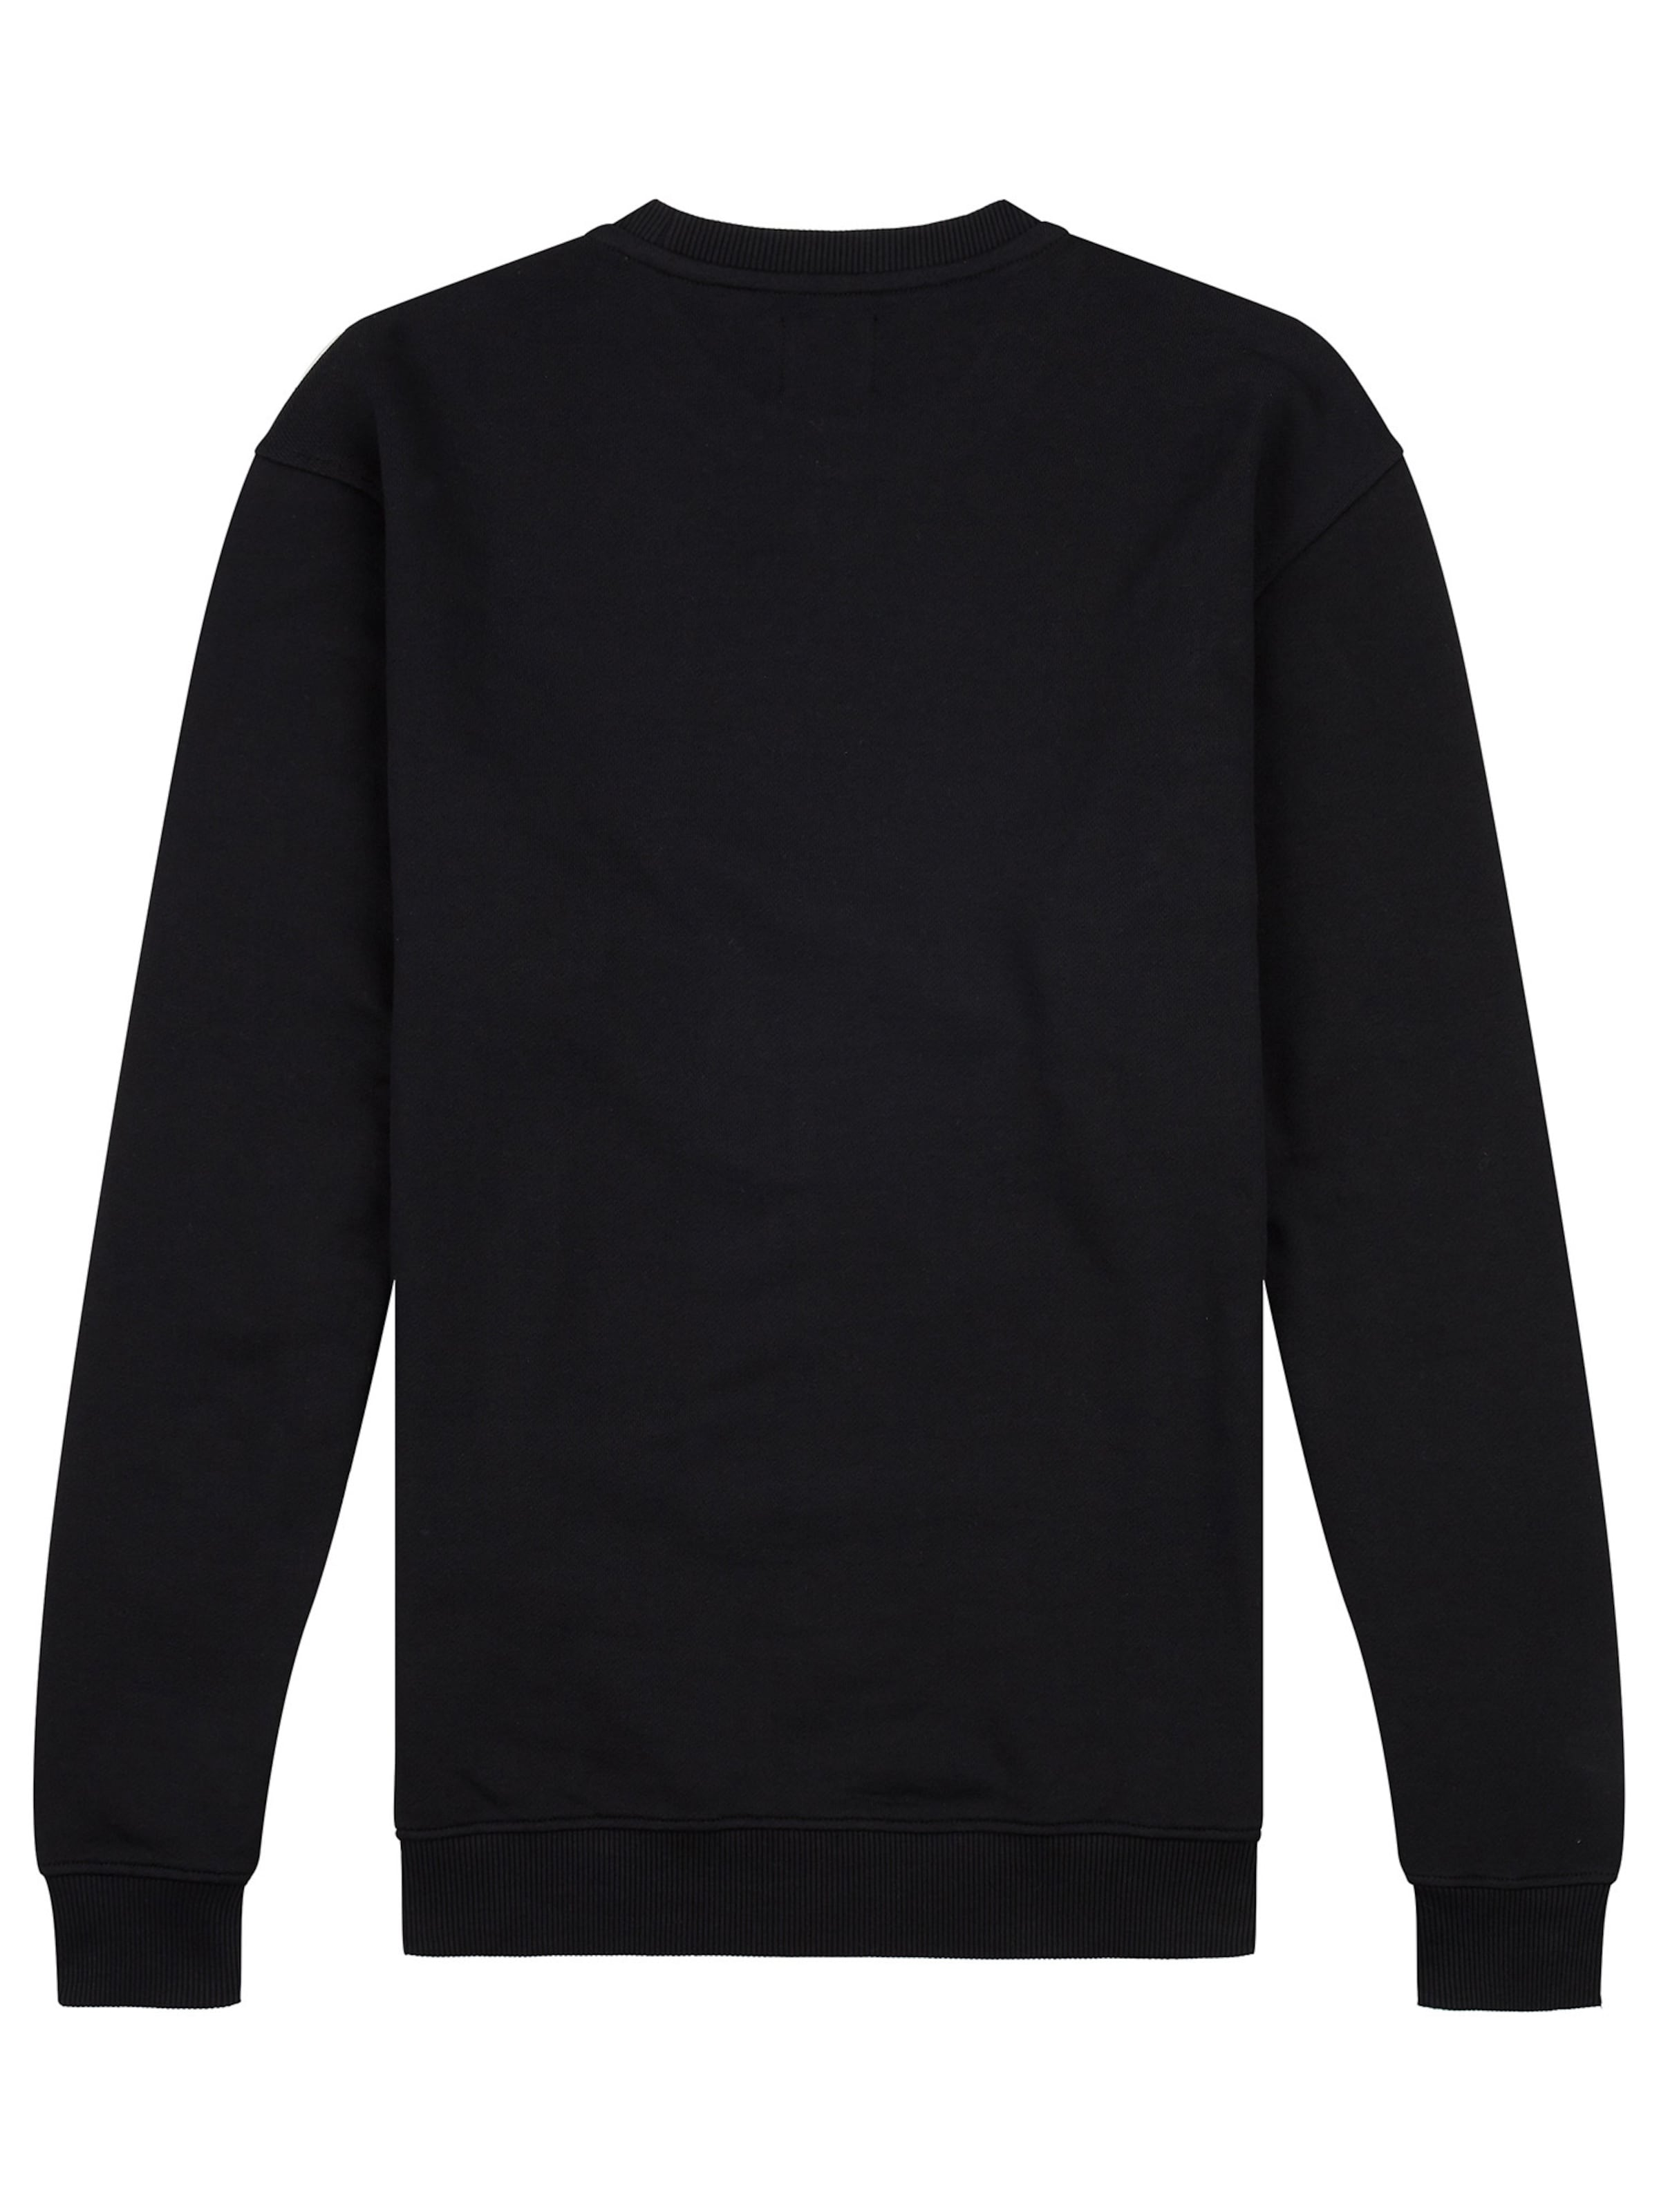 His Jeans Schwarz Sweatshirt In mnvN8O0w